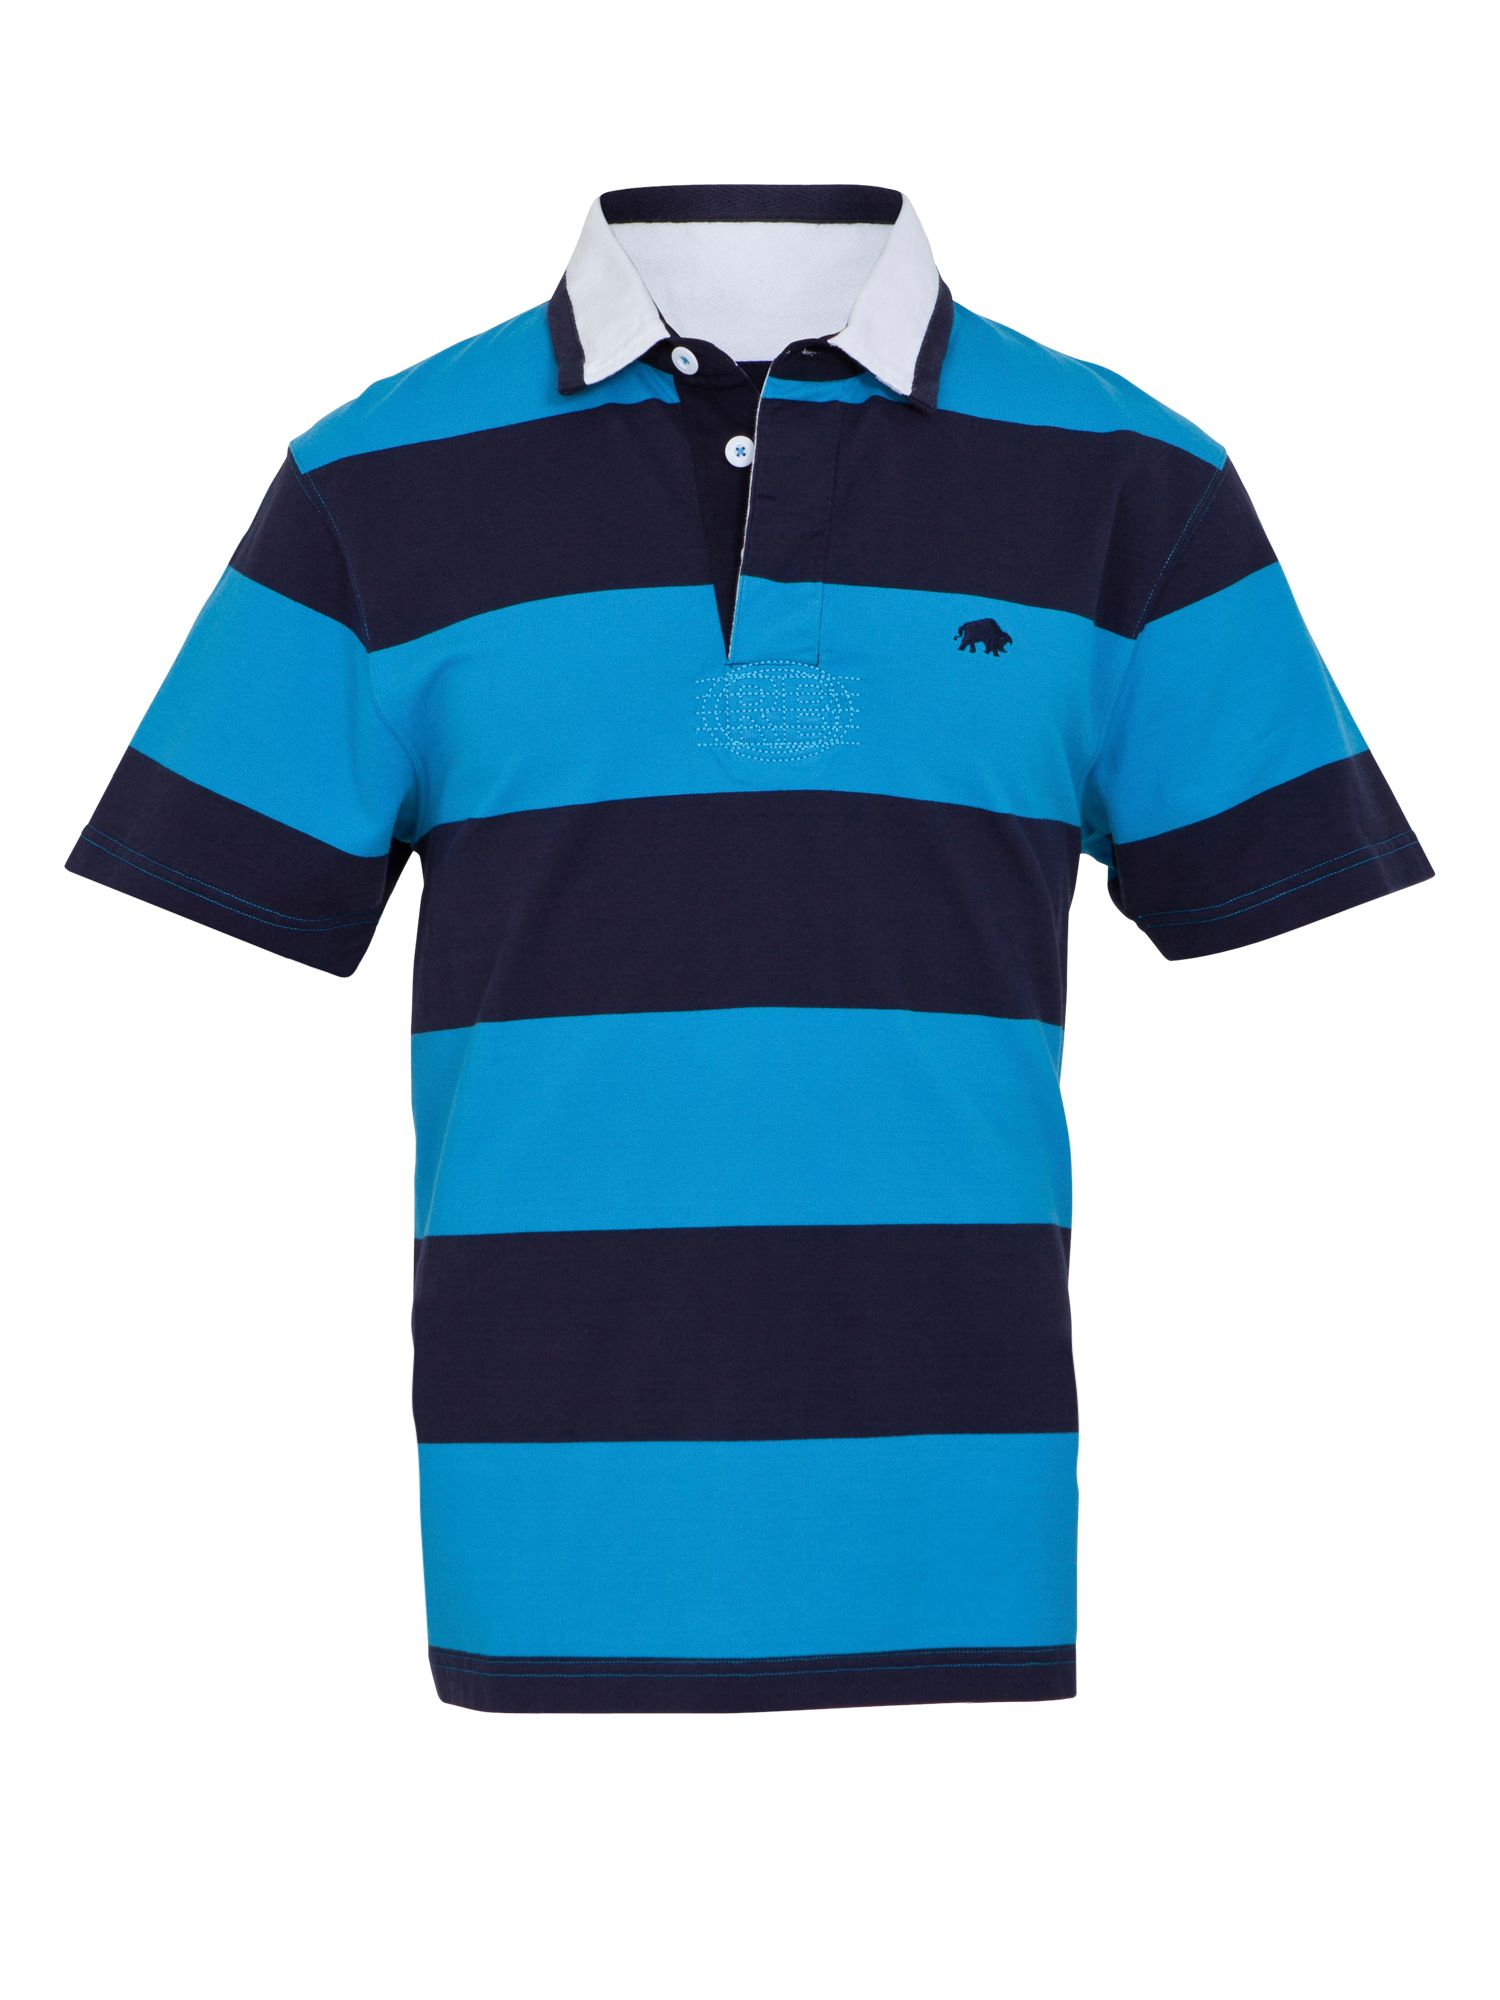 Two stripe rugby shirt